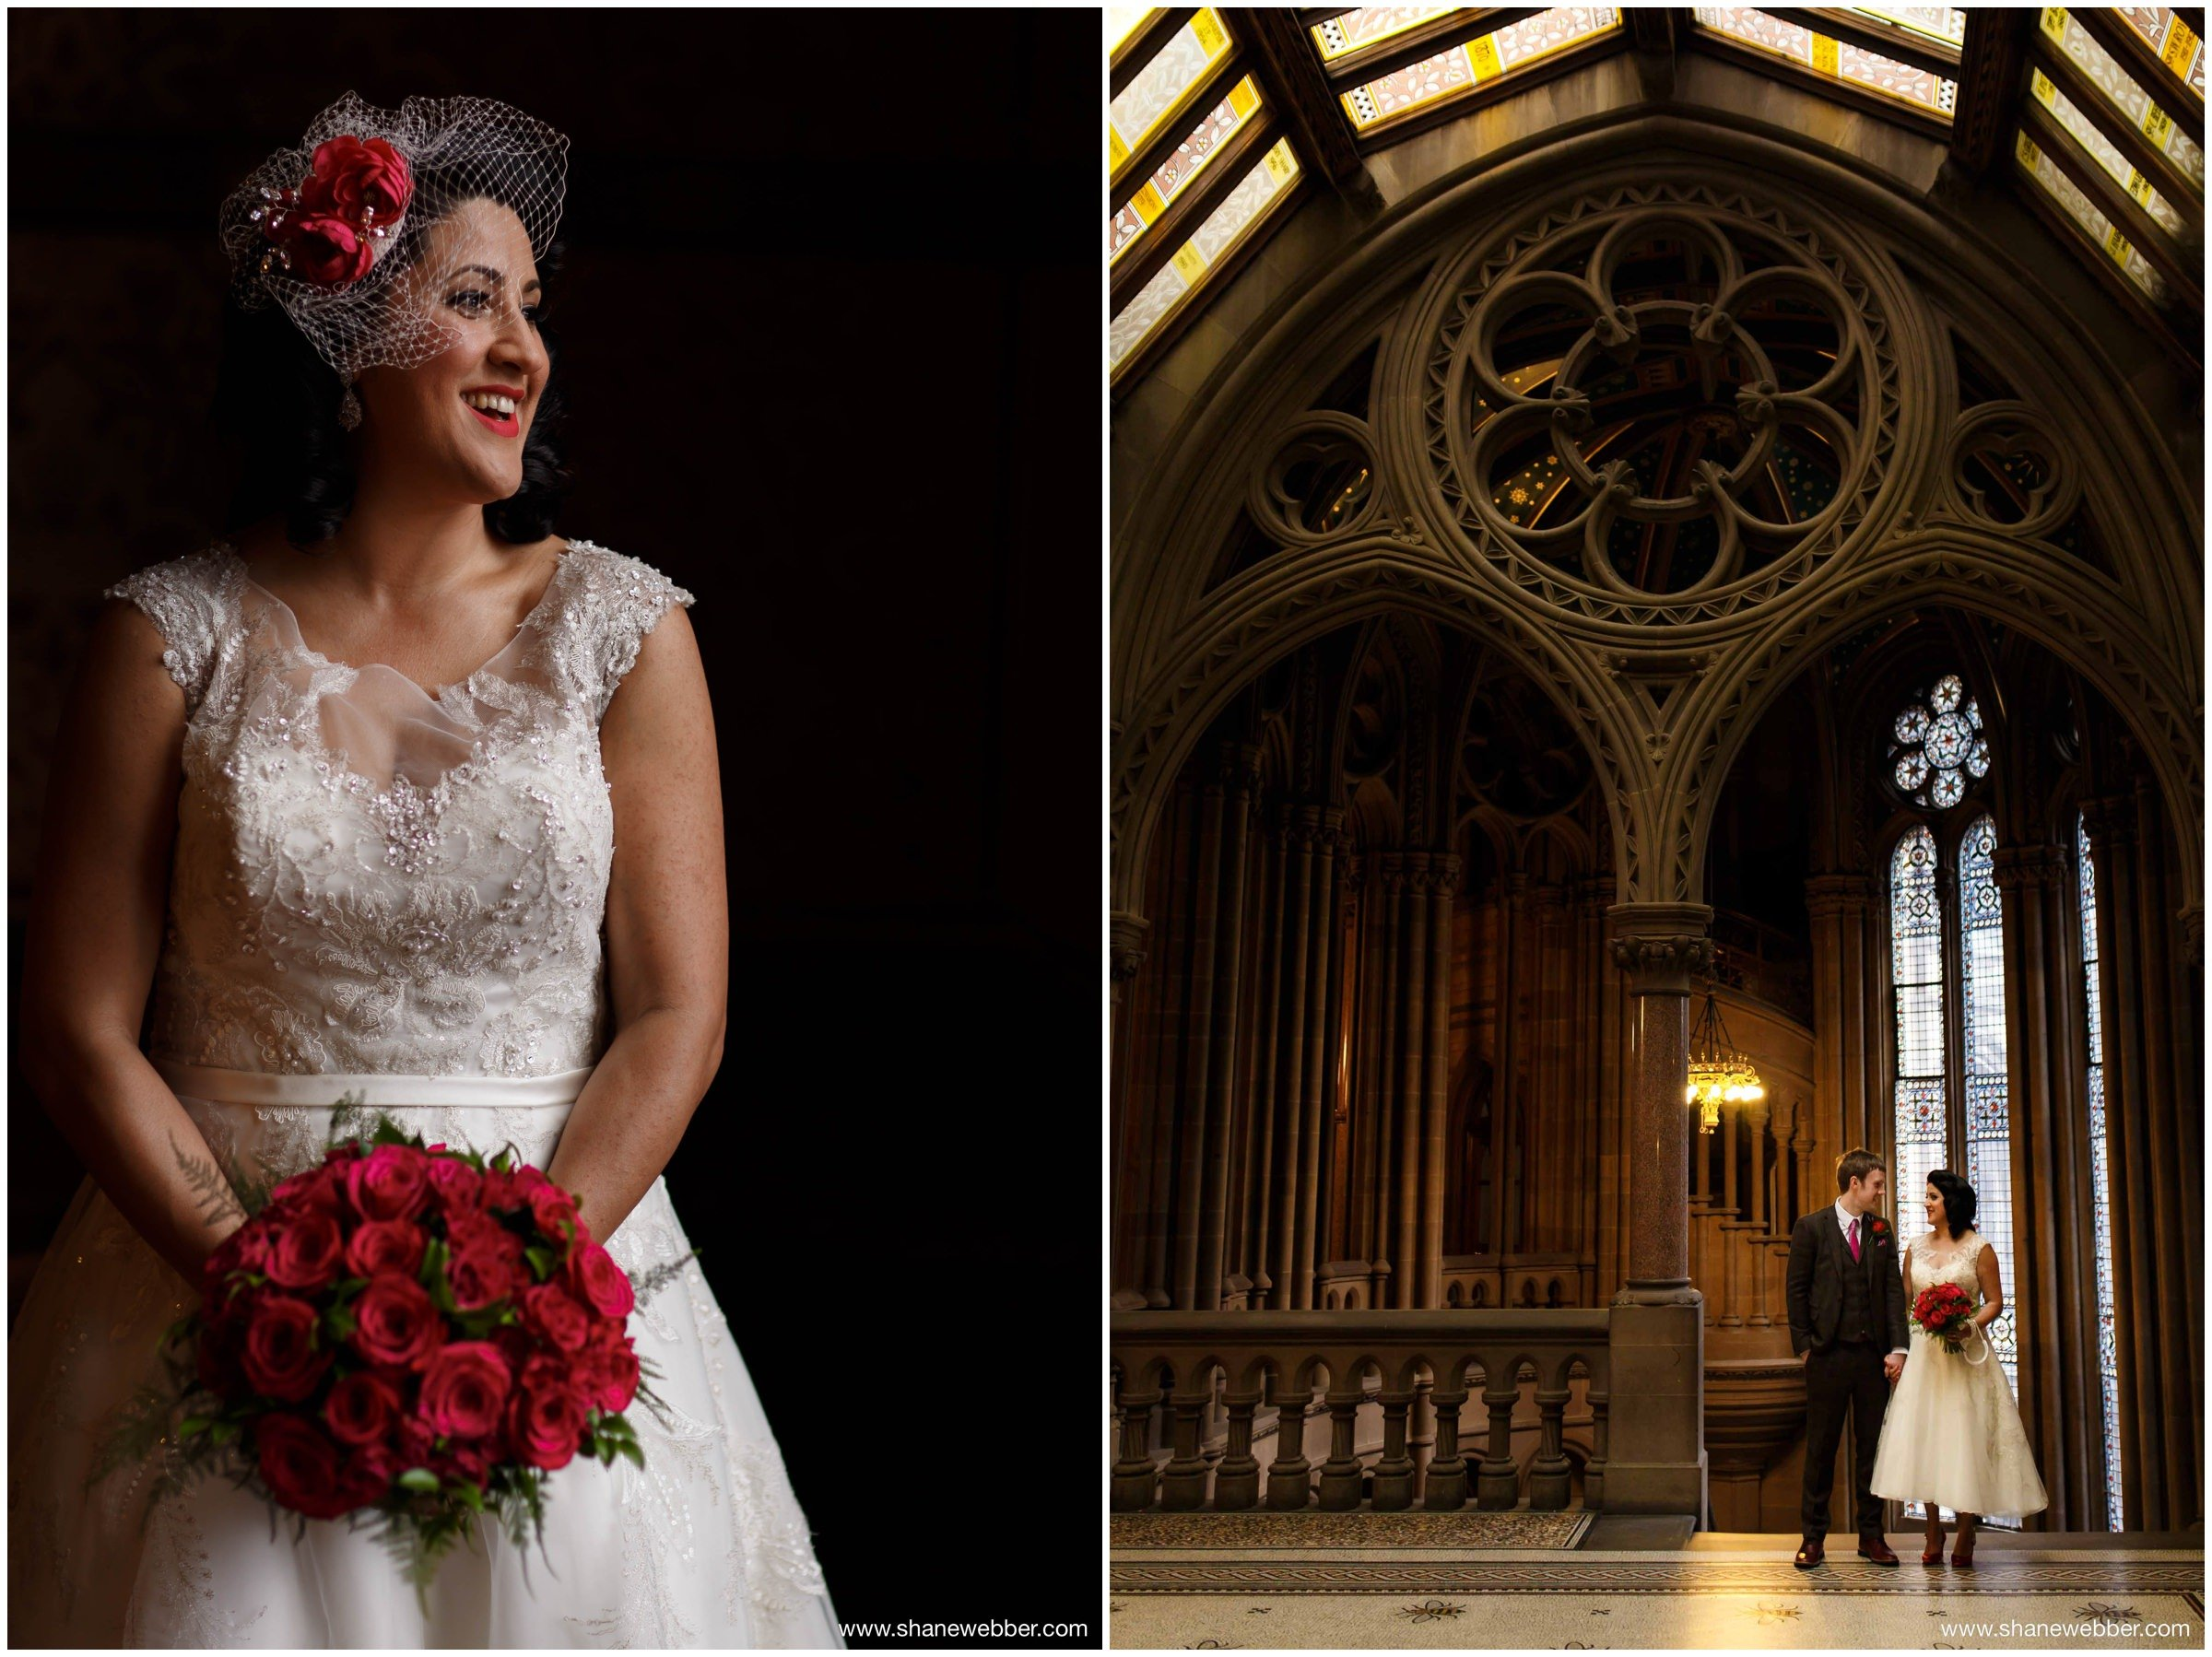 Weddings at the Town Hall in Manchester